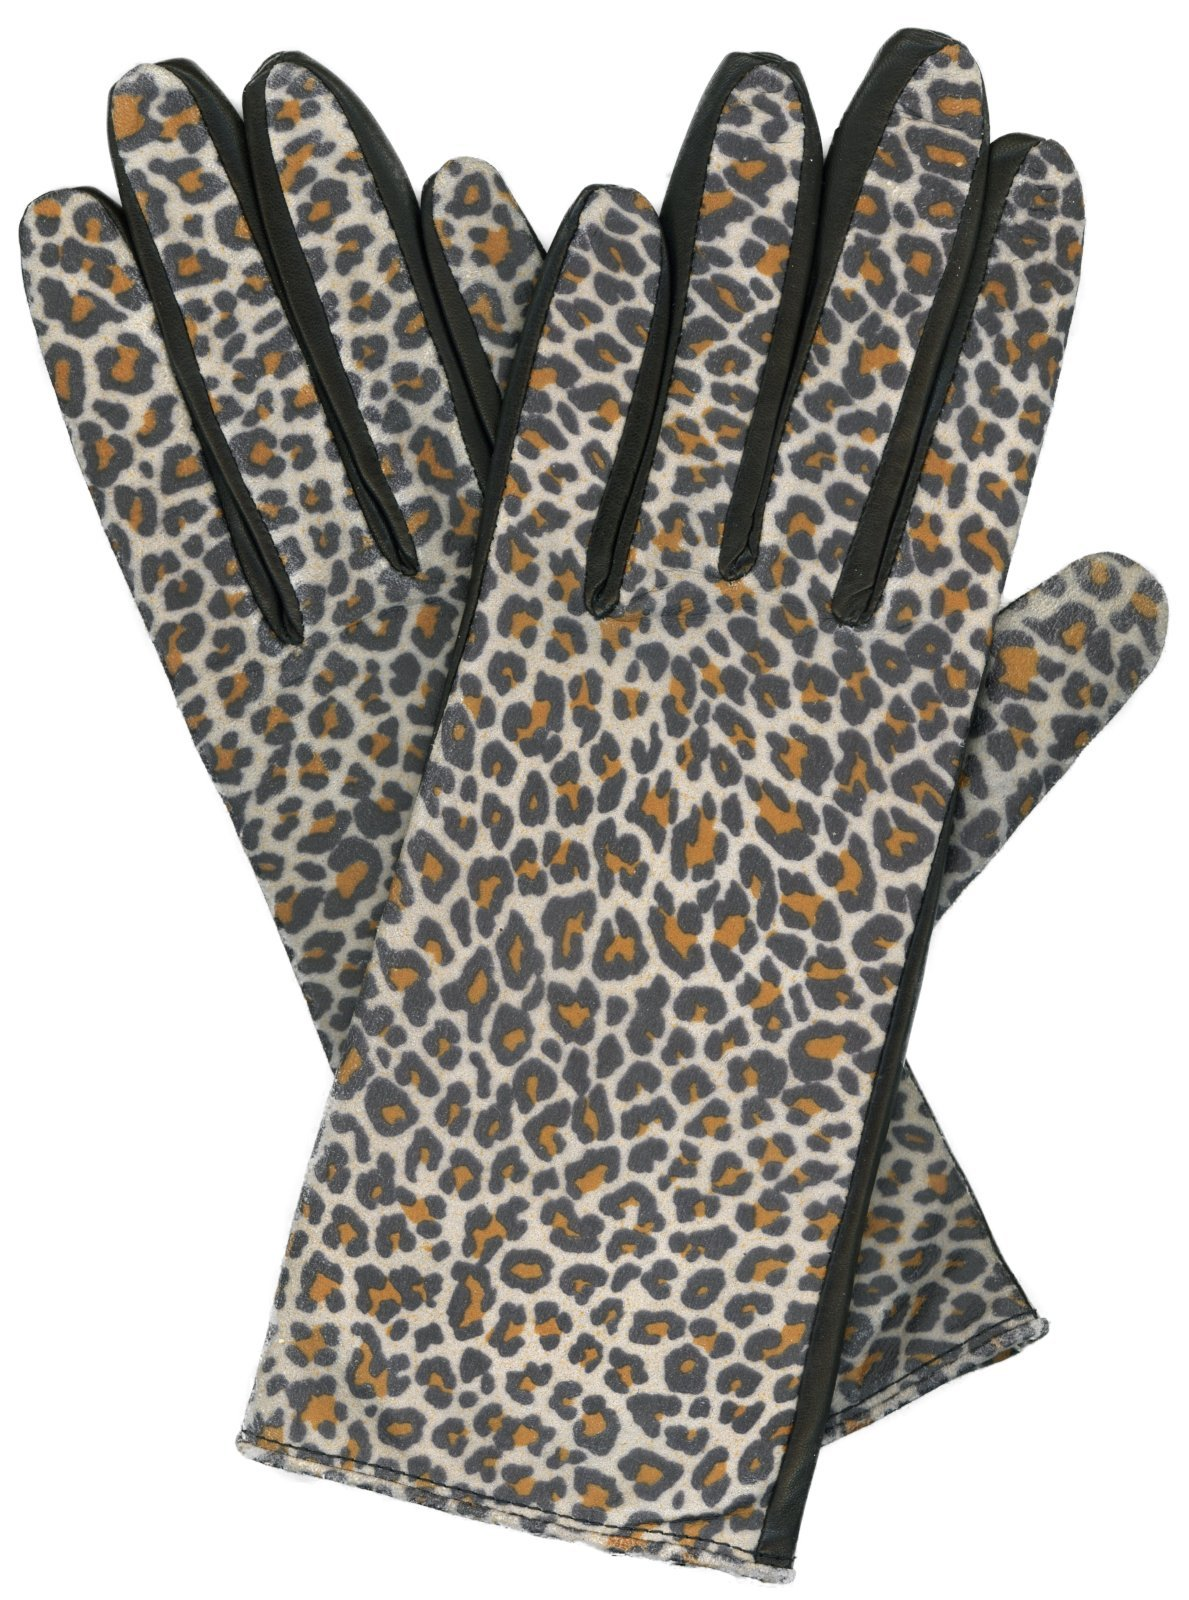 Grandoe Women's KITTY Leather Palm Glove, Leopard Print (Black, Large)